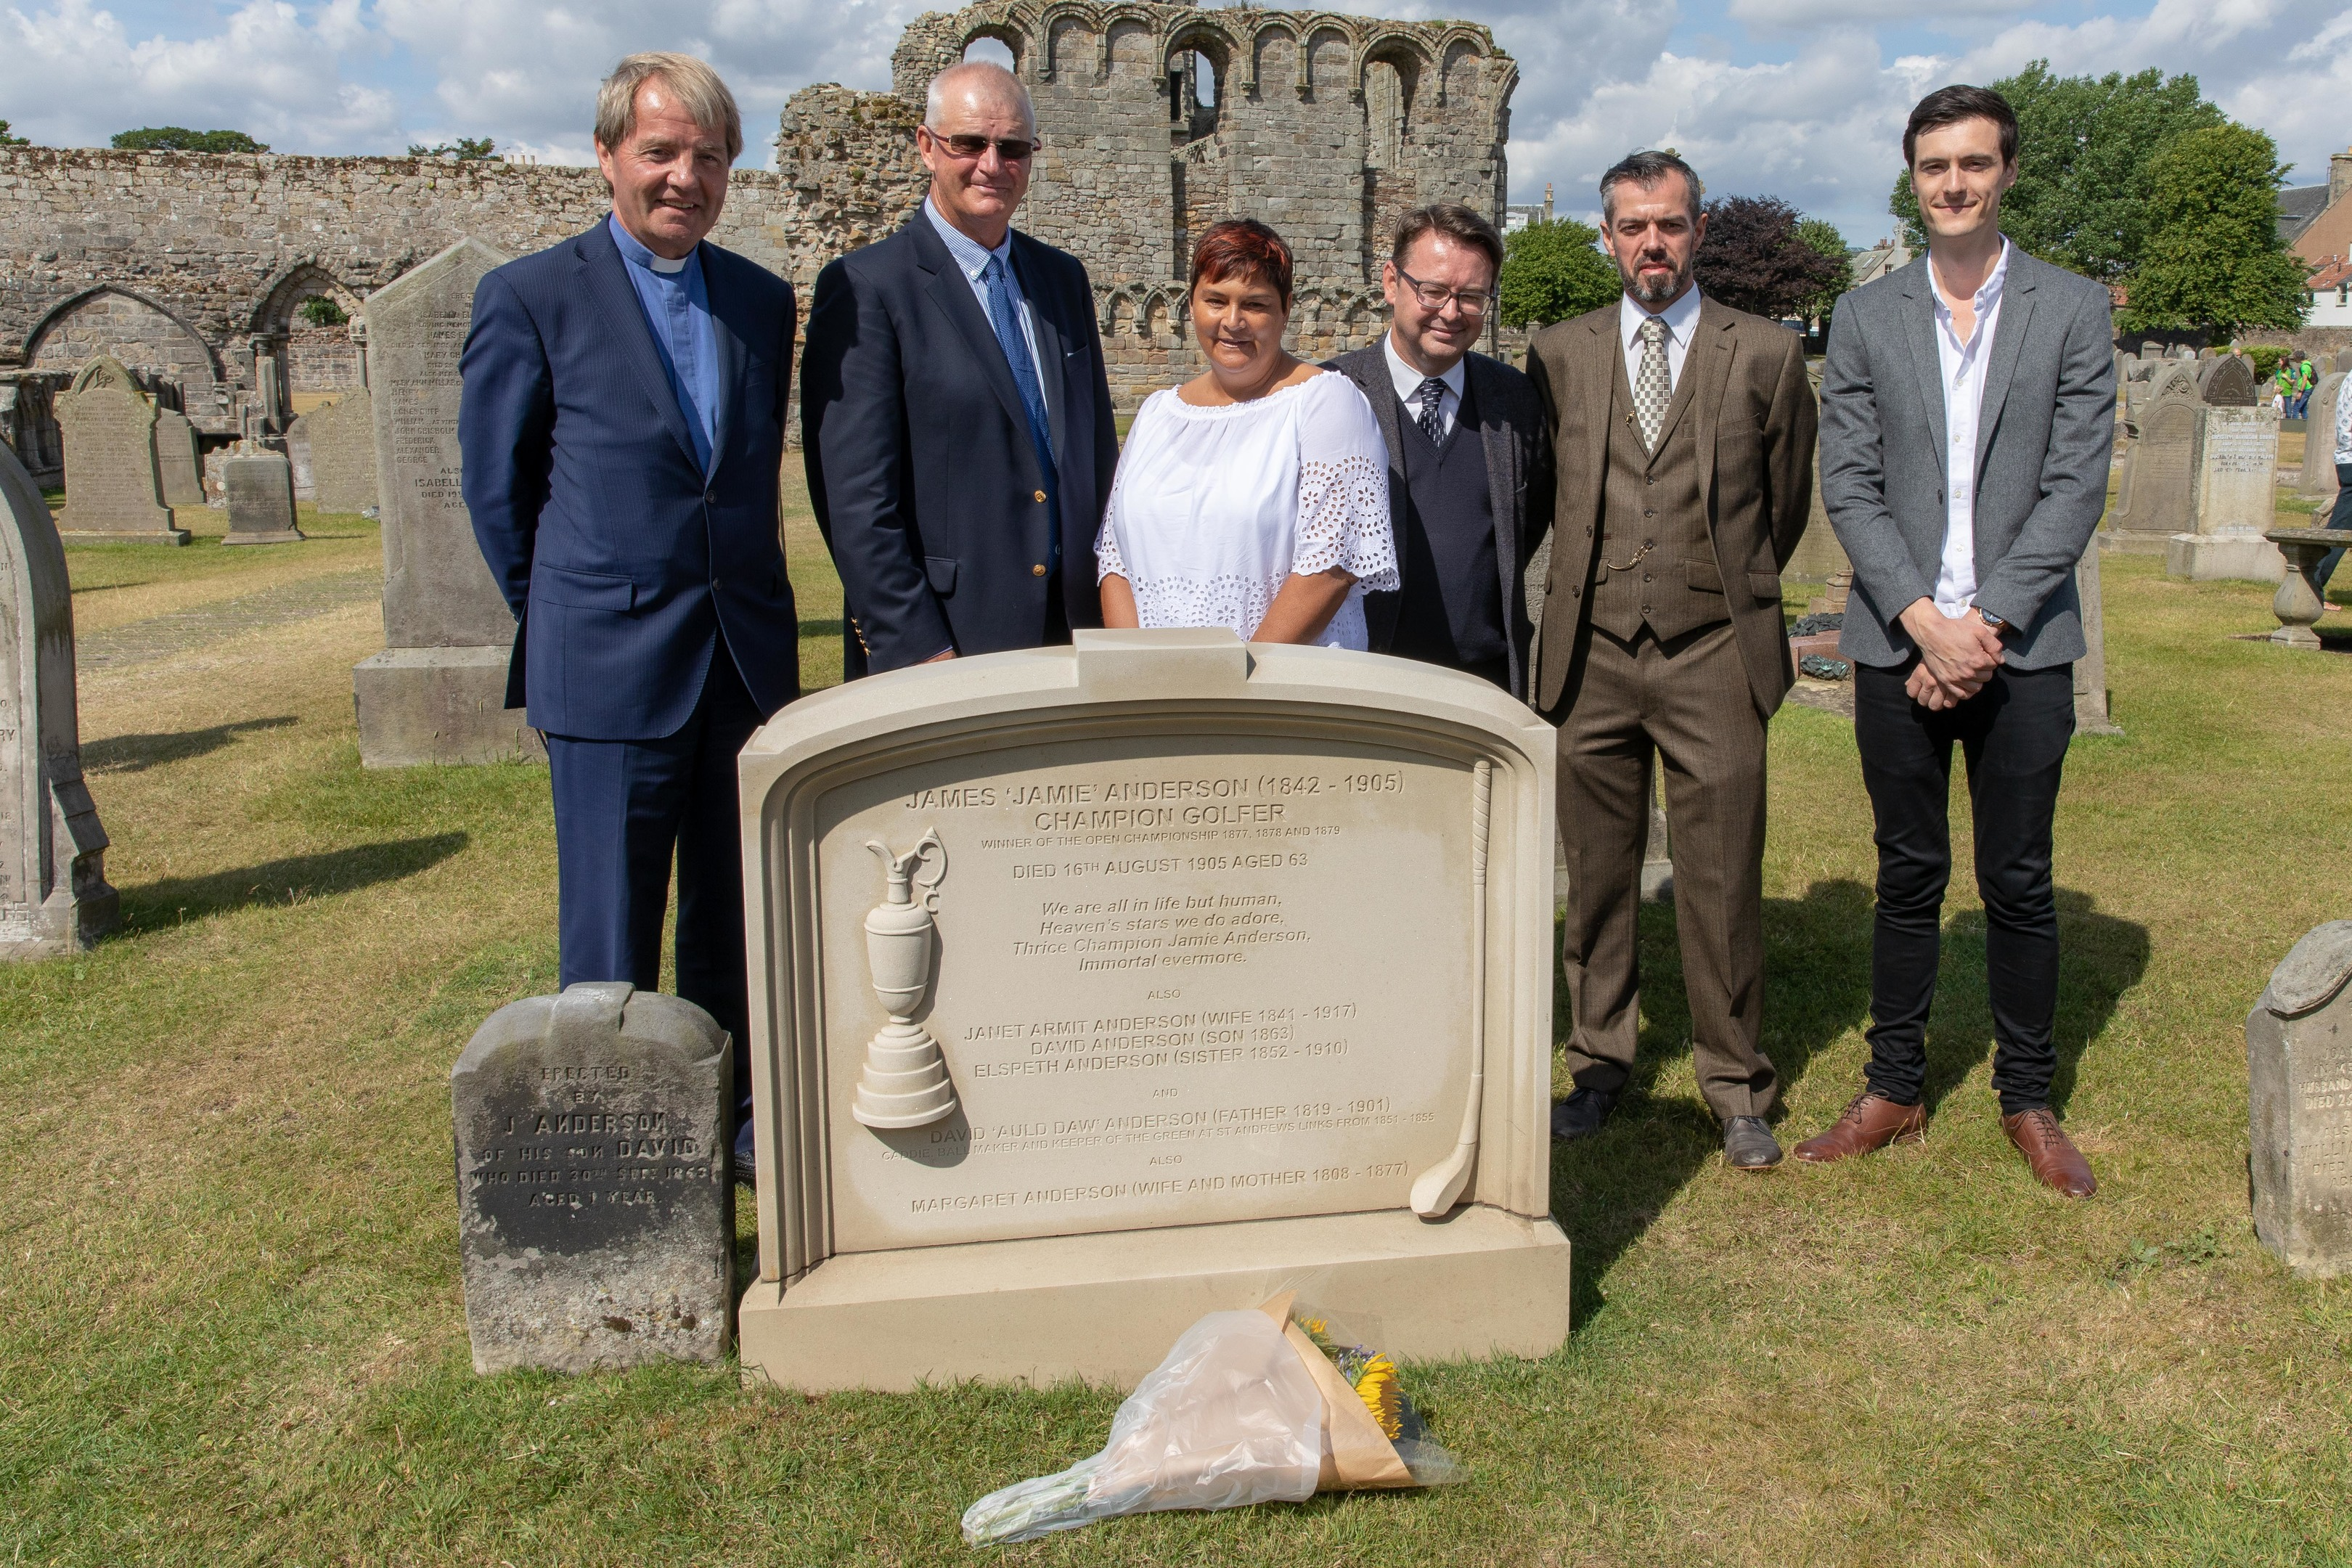 Rev Dr Russell Barr, Sandy Lyle, Sharon Allan (GGG Grandaughter), Roger McStravic, Mark Ritchie (Stonemason) and David Allan (Sharons son) at the new Headstone for Championship Golfer Jamie Anderson who was buried in a paupers grave